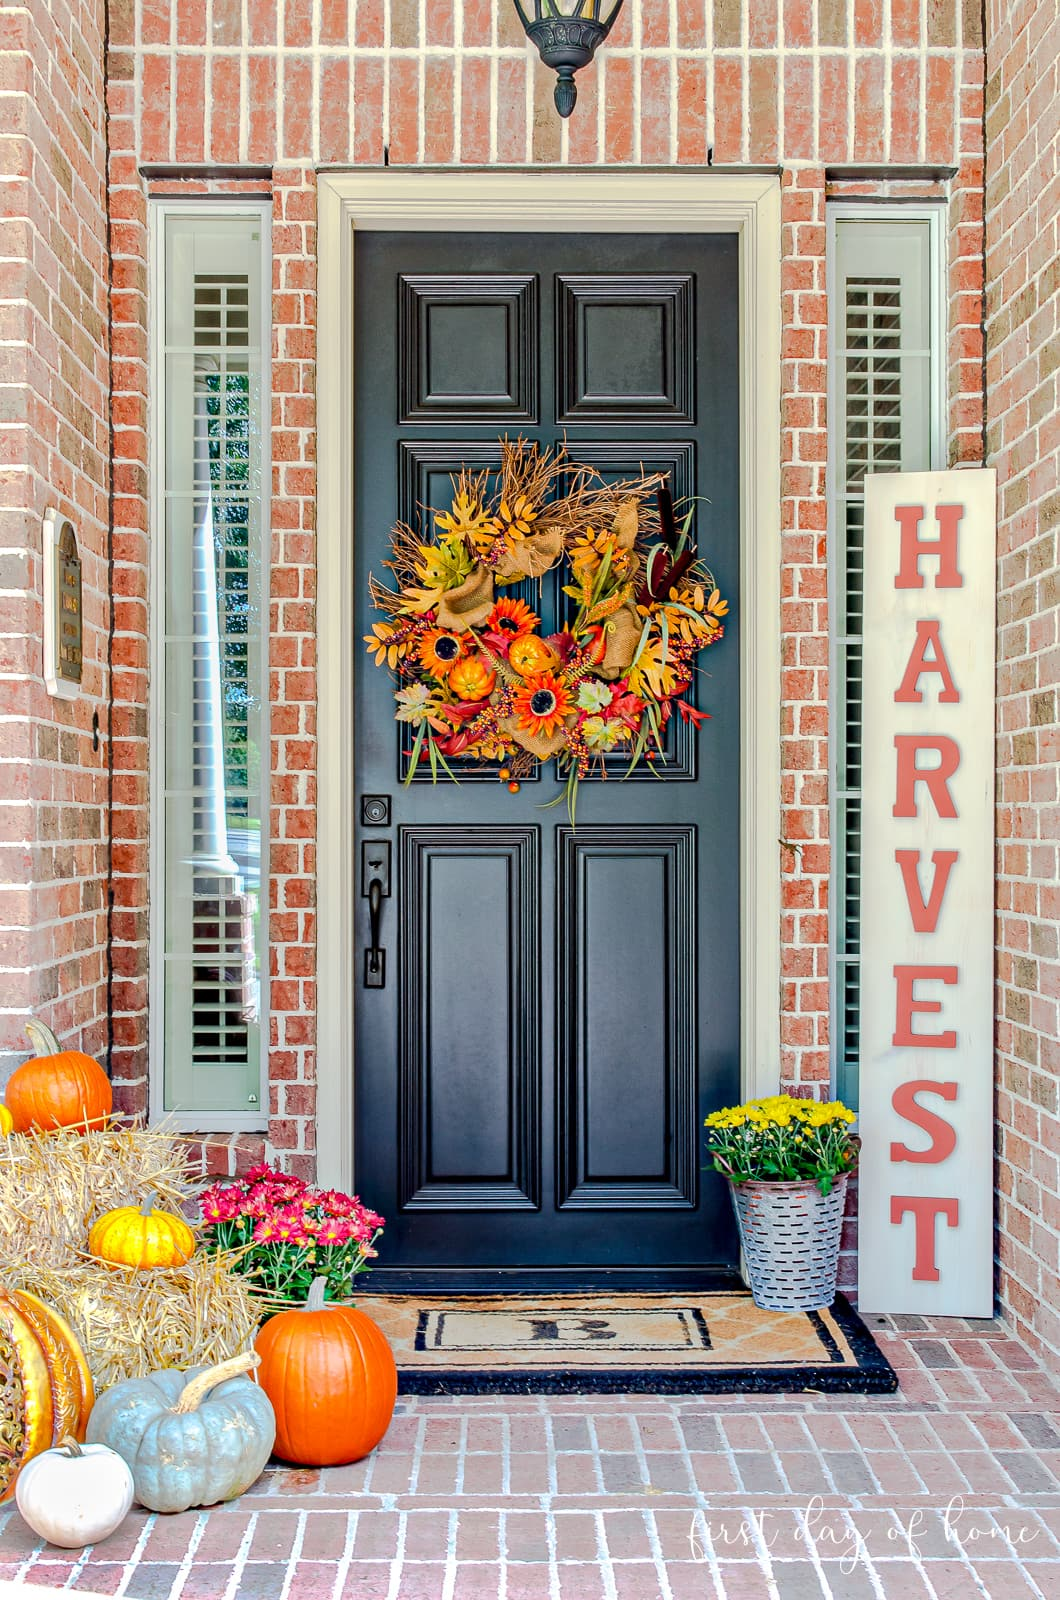 Fall front porch decor with pumpkins, Harvest sign, wreath, hay and other accents